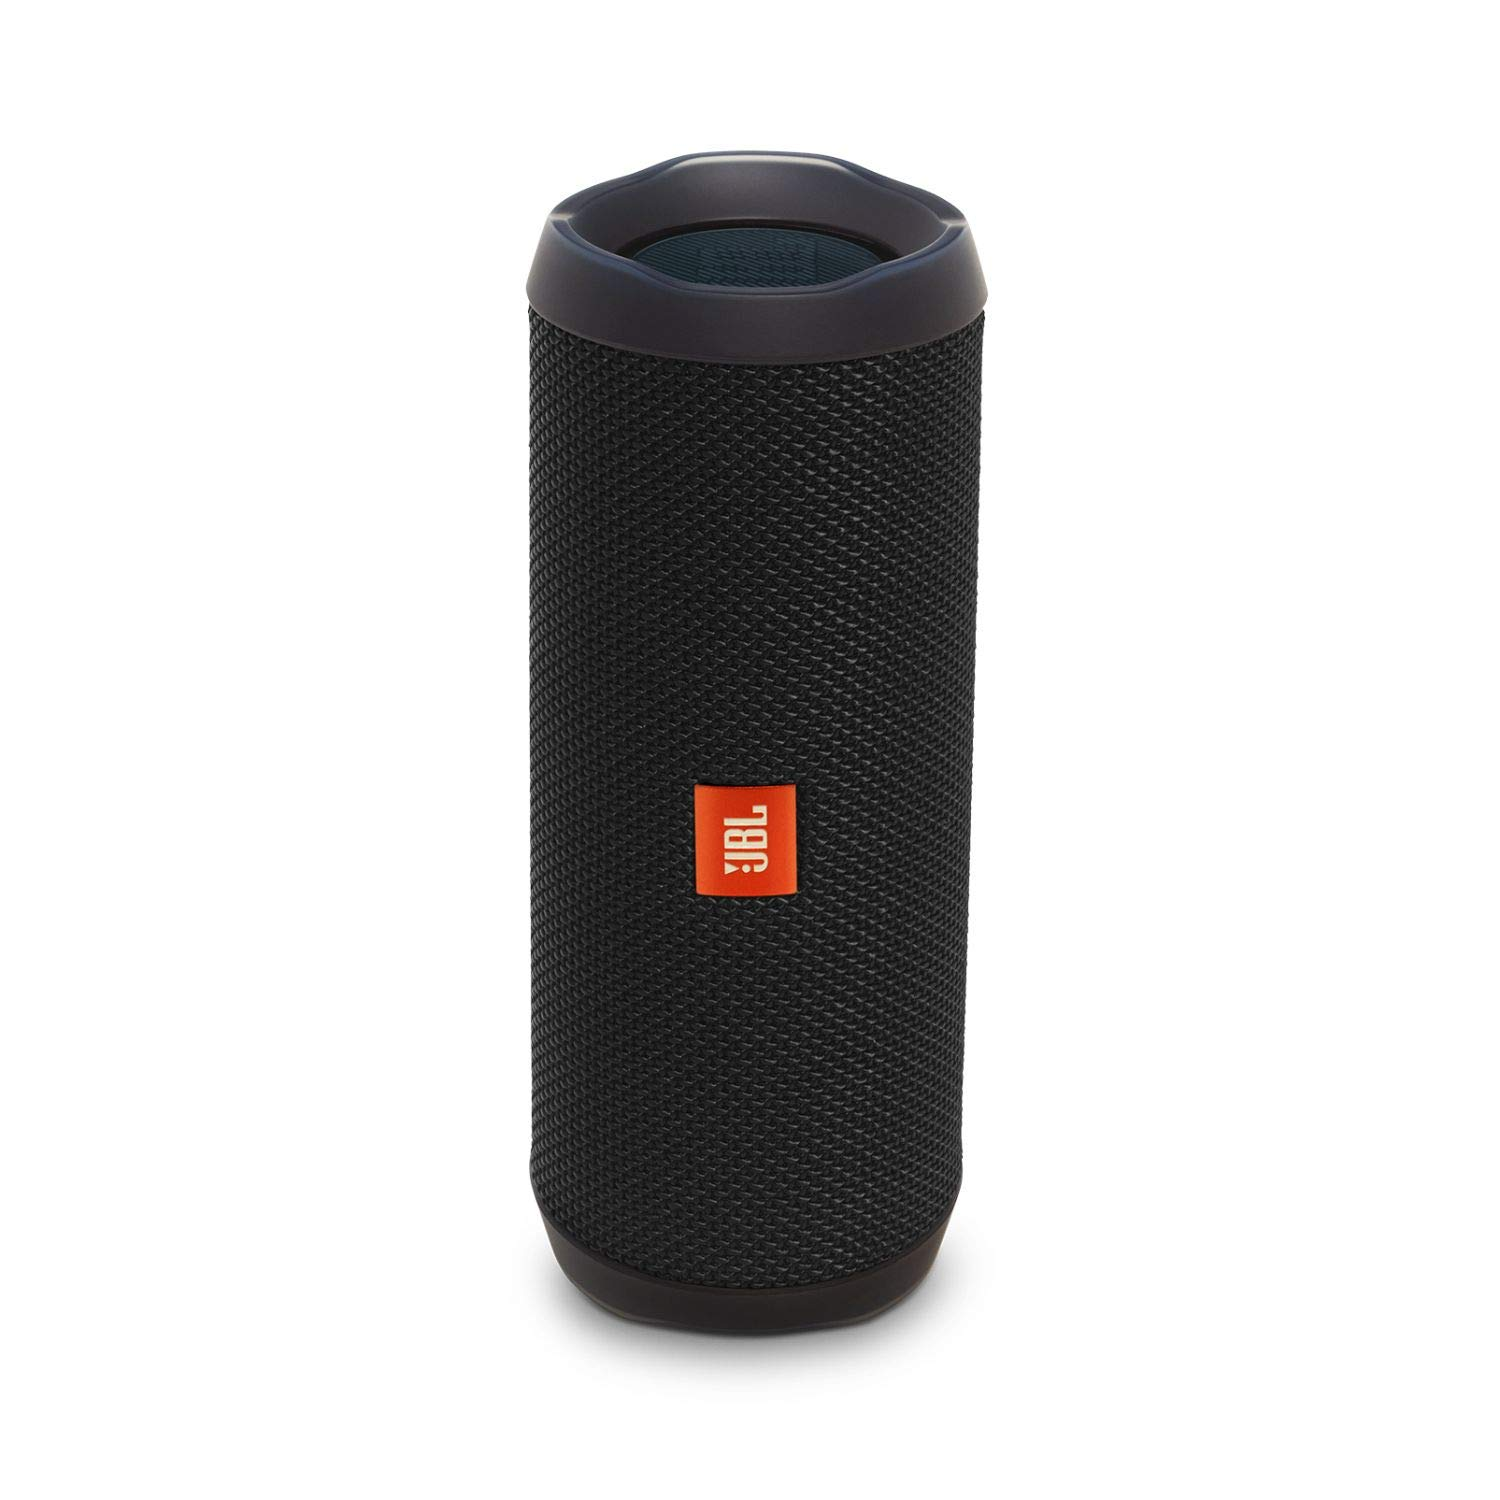 7683eaaef48 Amazon.com: JBL Flip 4 Bluetooth Portable Stereo Speaker - Black:  Electronics